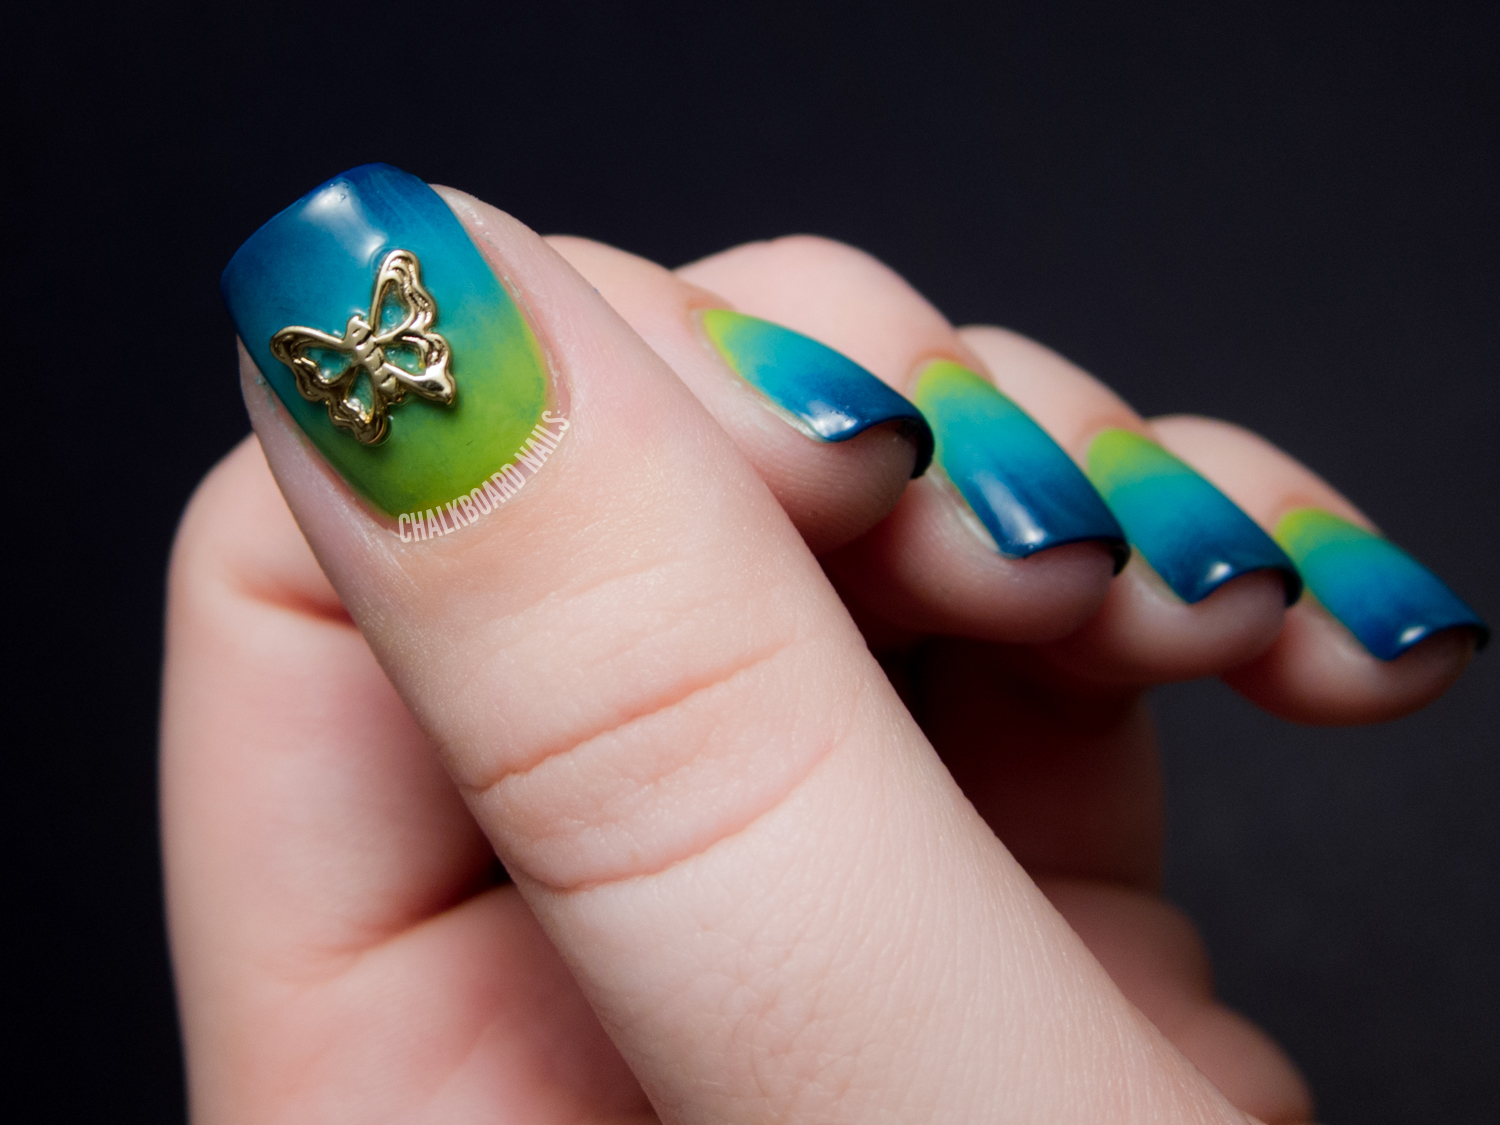 Marsh Gradient and Butterfly Charm Chalkboard Nails Nail Art Blog